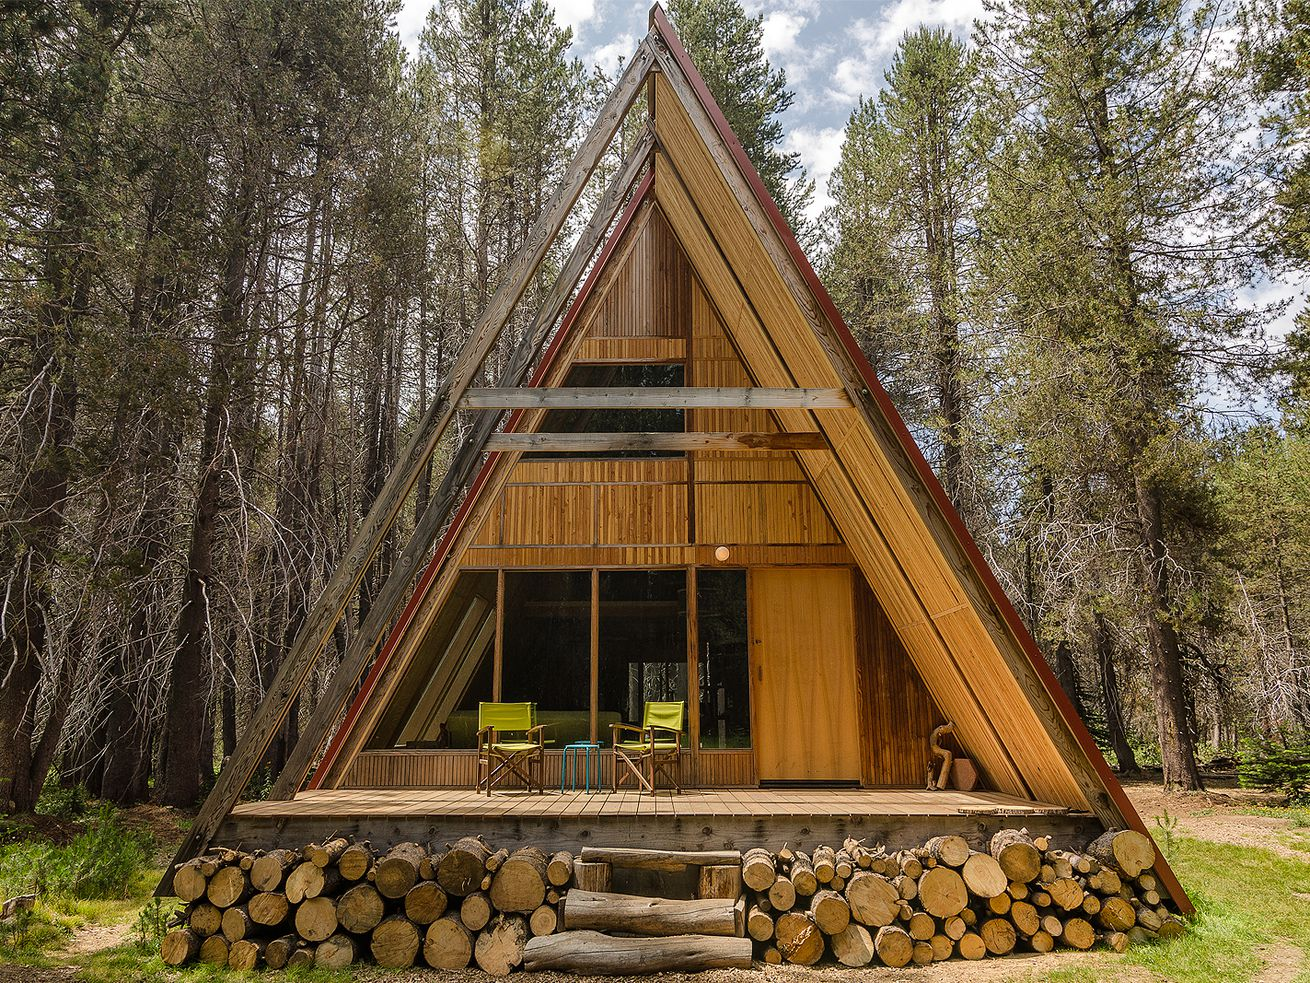 An A-frame available for vacation rentals in Yosemite, California.